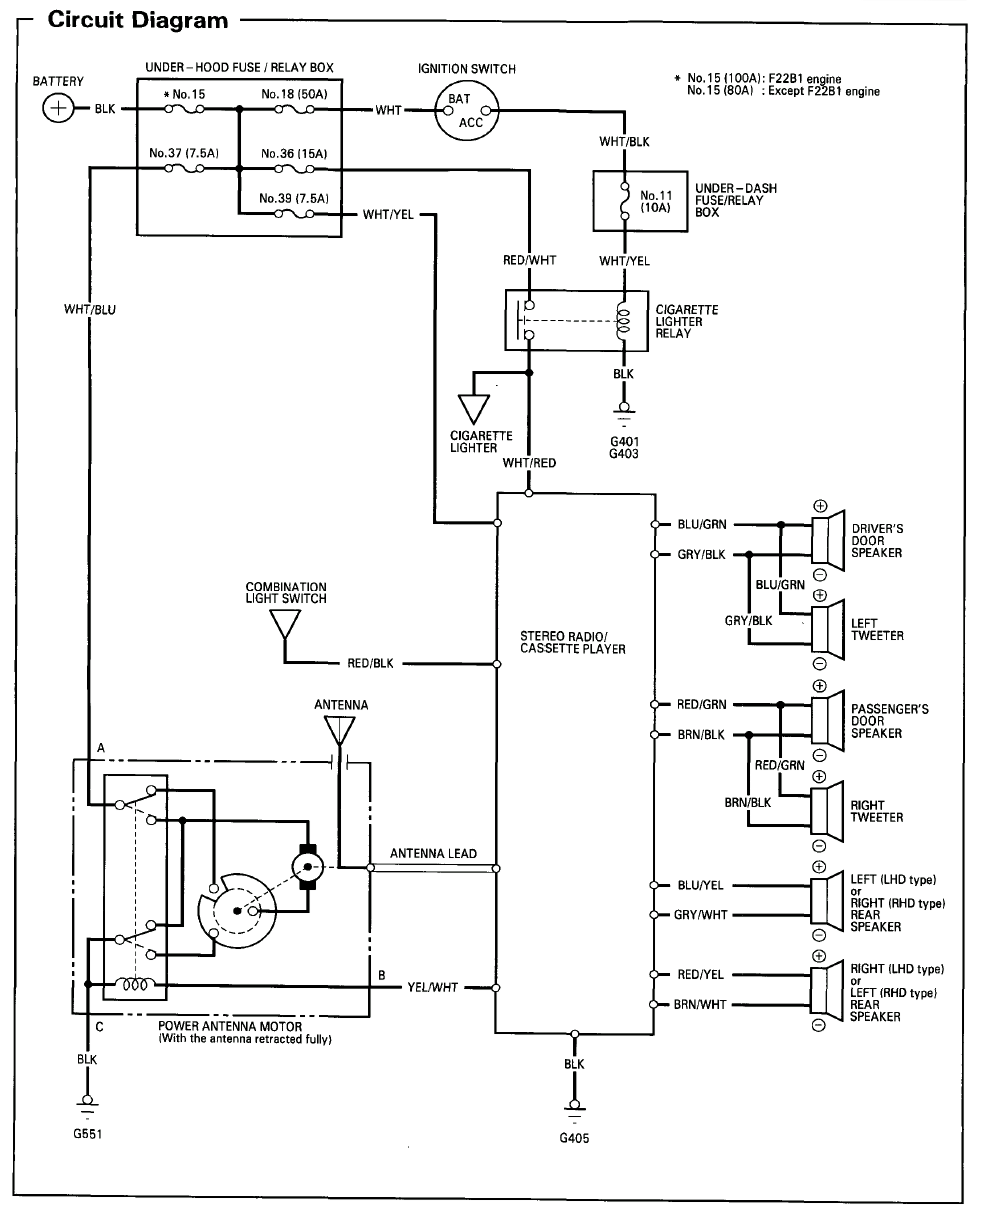 1994 mazda miata wiring diagram wirdig wiring diagram 1992 acura legend motor replacement parts and diagram